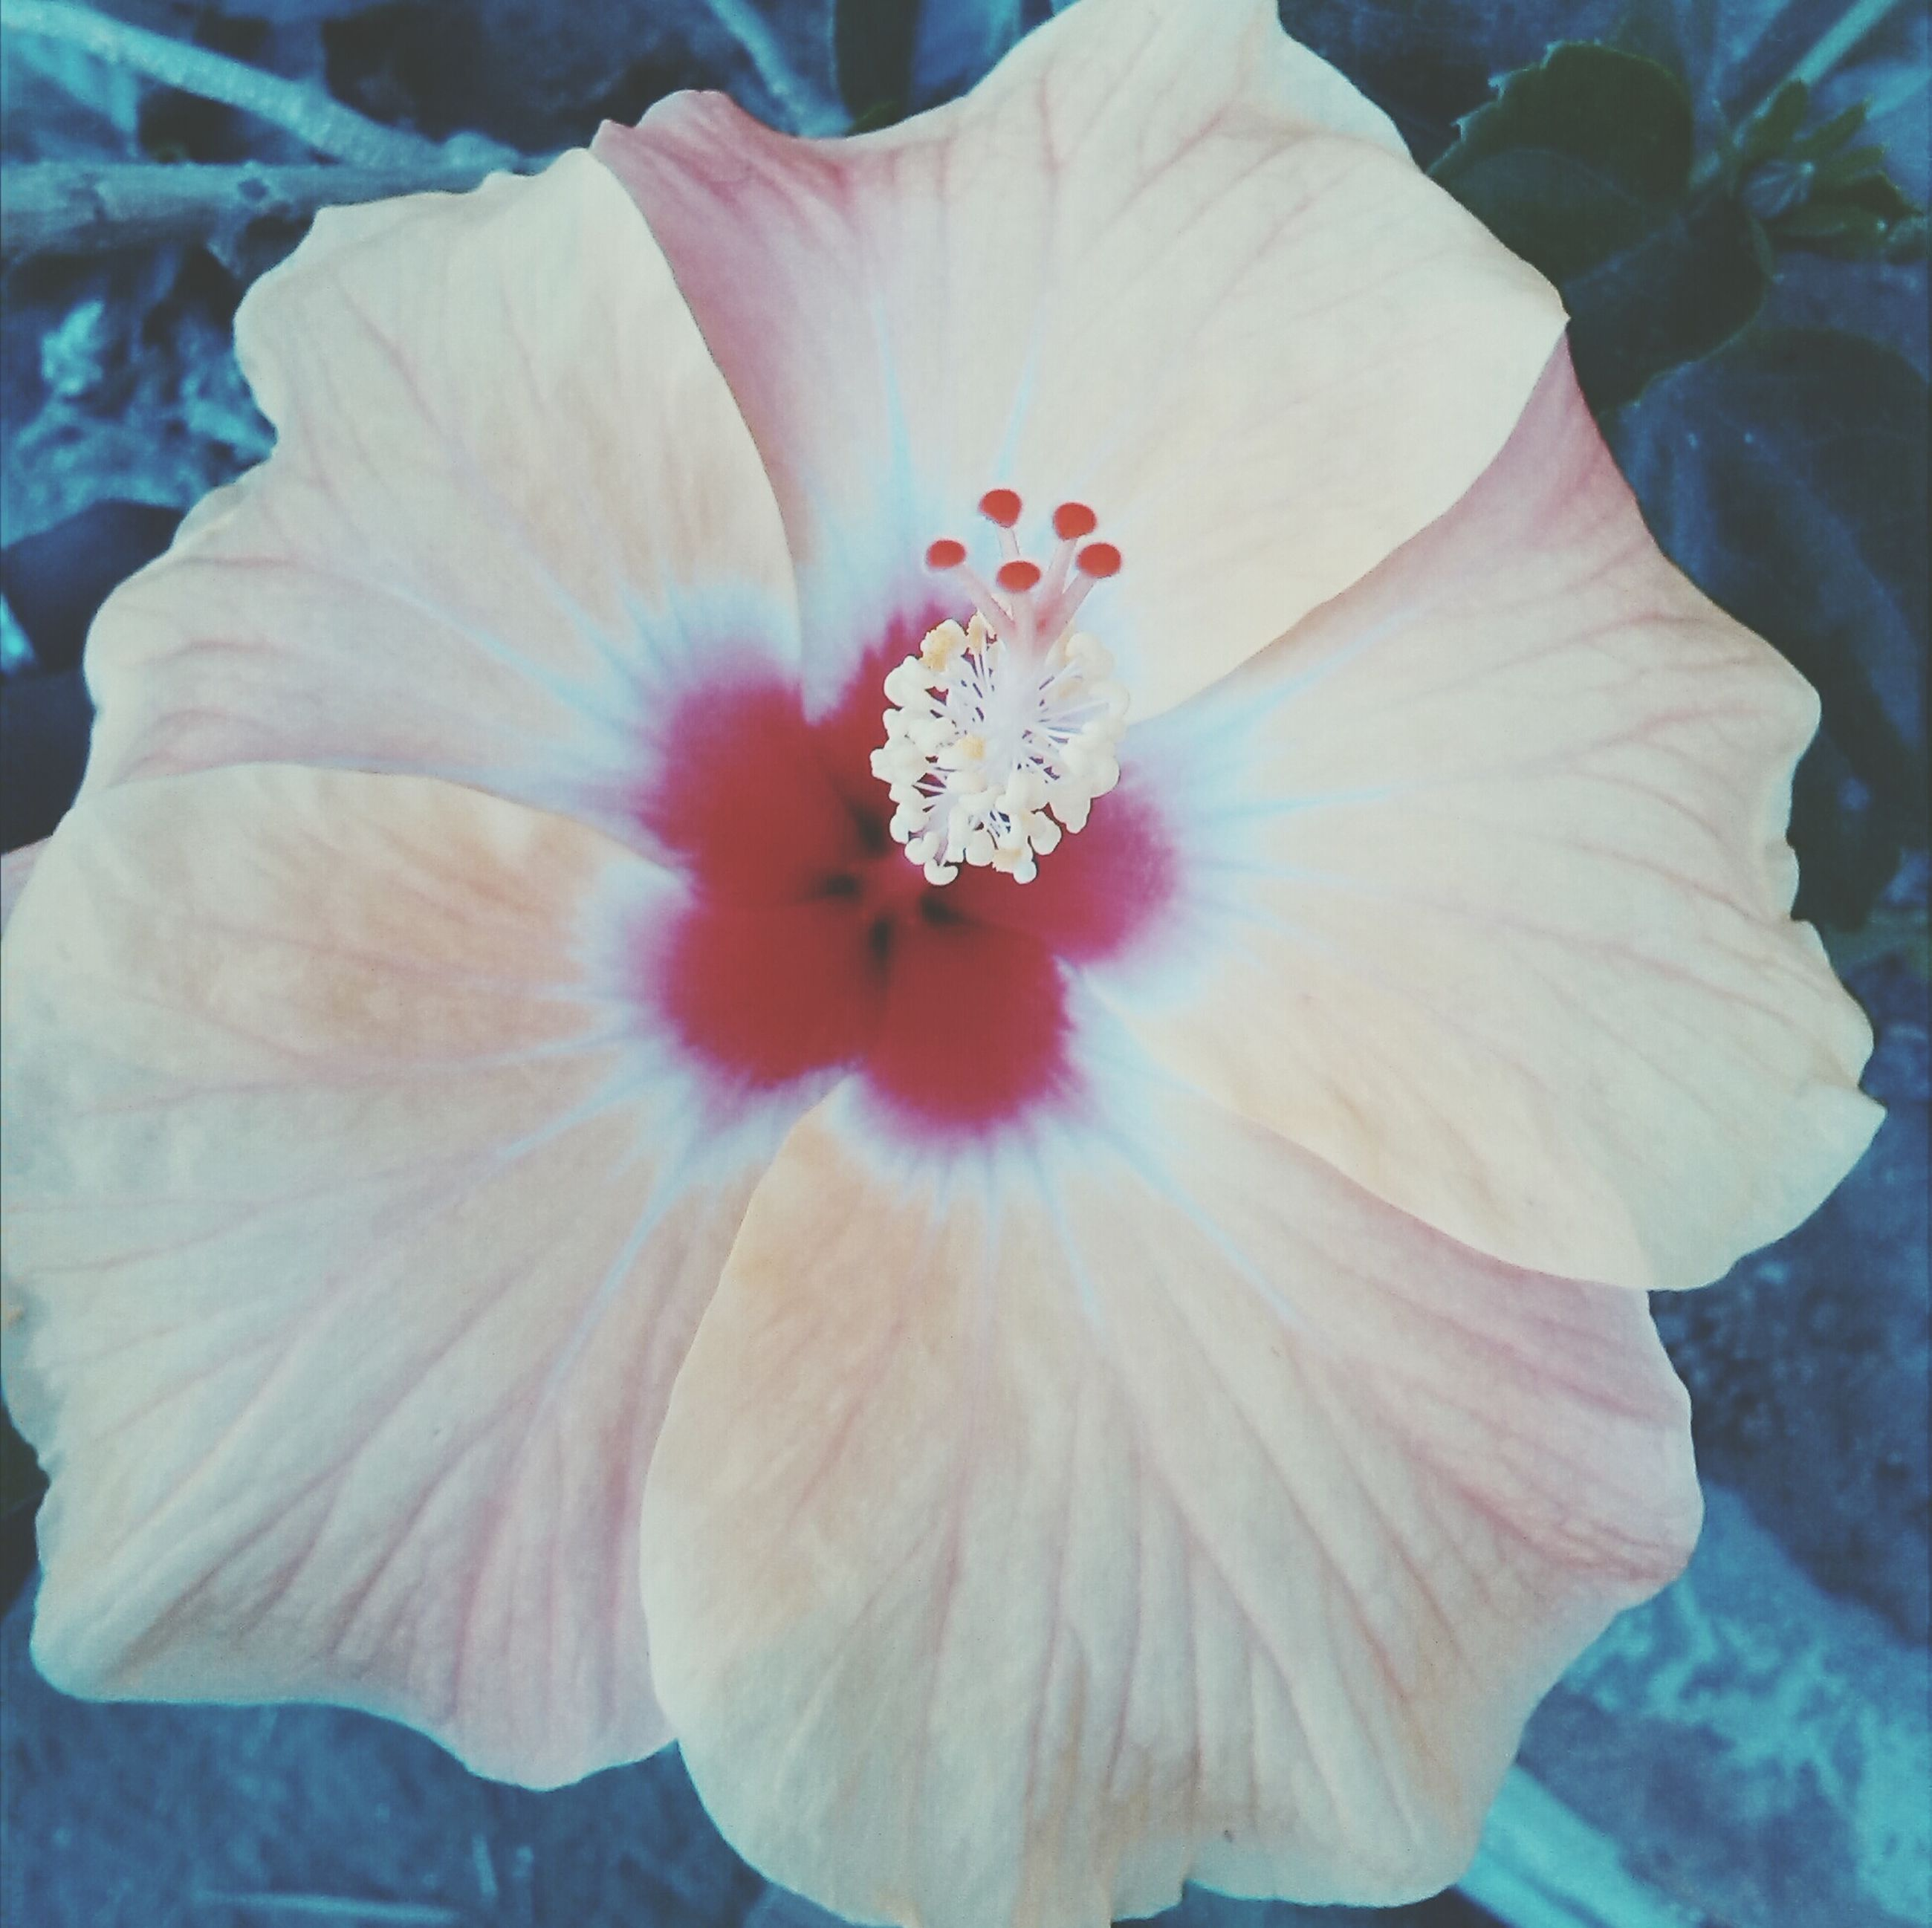 flower, petal, flower head, fragility, freshness, single flower, beauty in nature, growth, close-up, pollen, stamen, nature, blooming, in bloom, plant, blossom, hibiscus, natural pattern, botany, softness